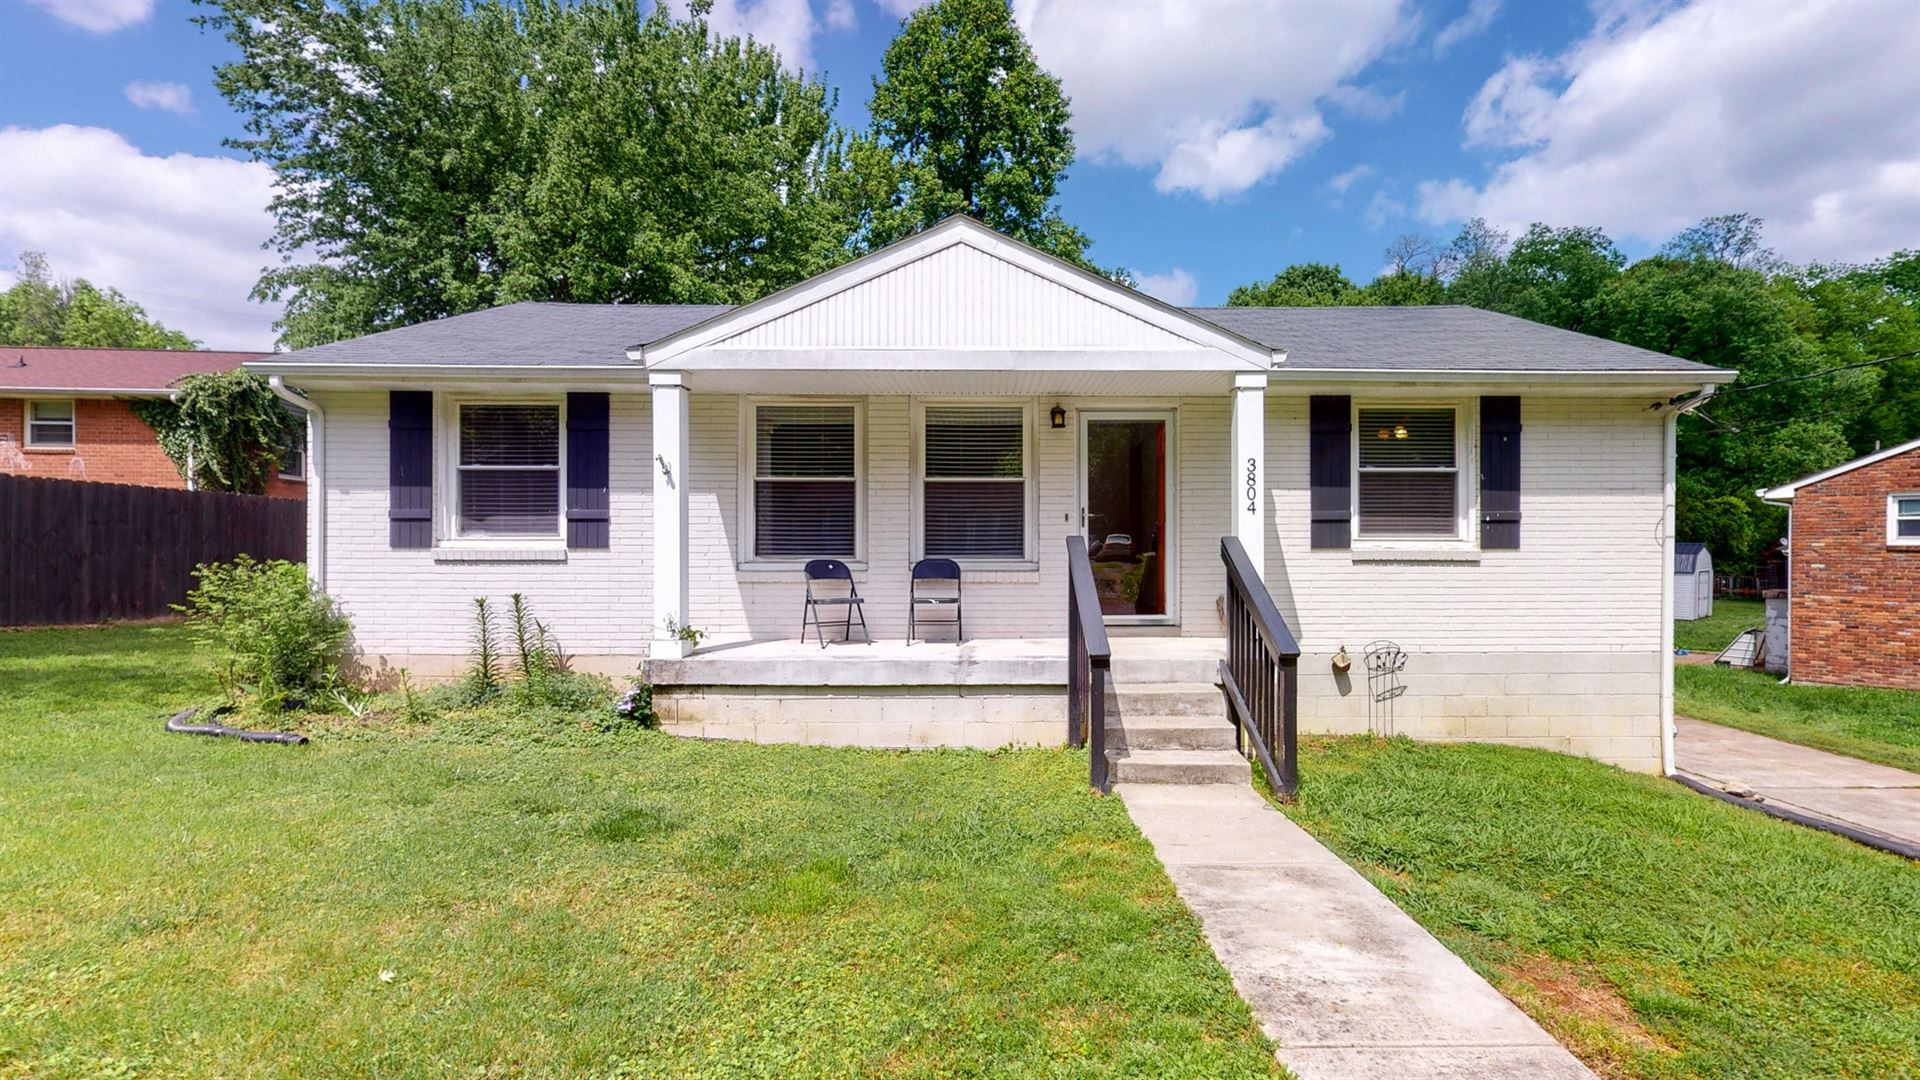 3804 Briarcliff Ct, Nashville, TN 37211 - MLS#: 2250182